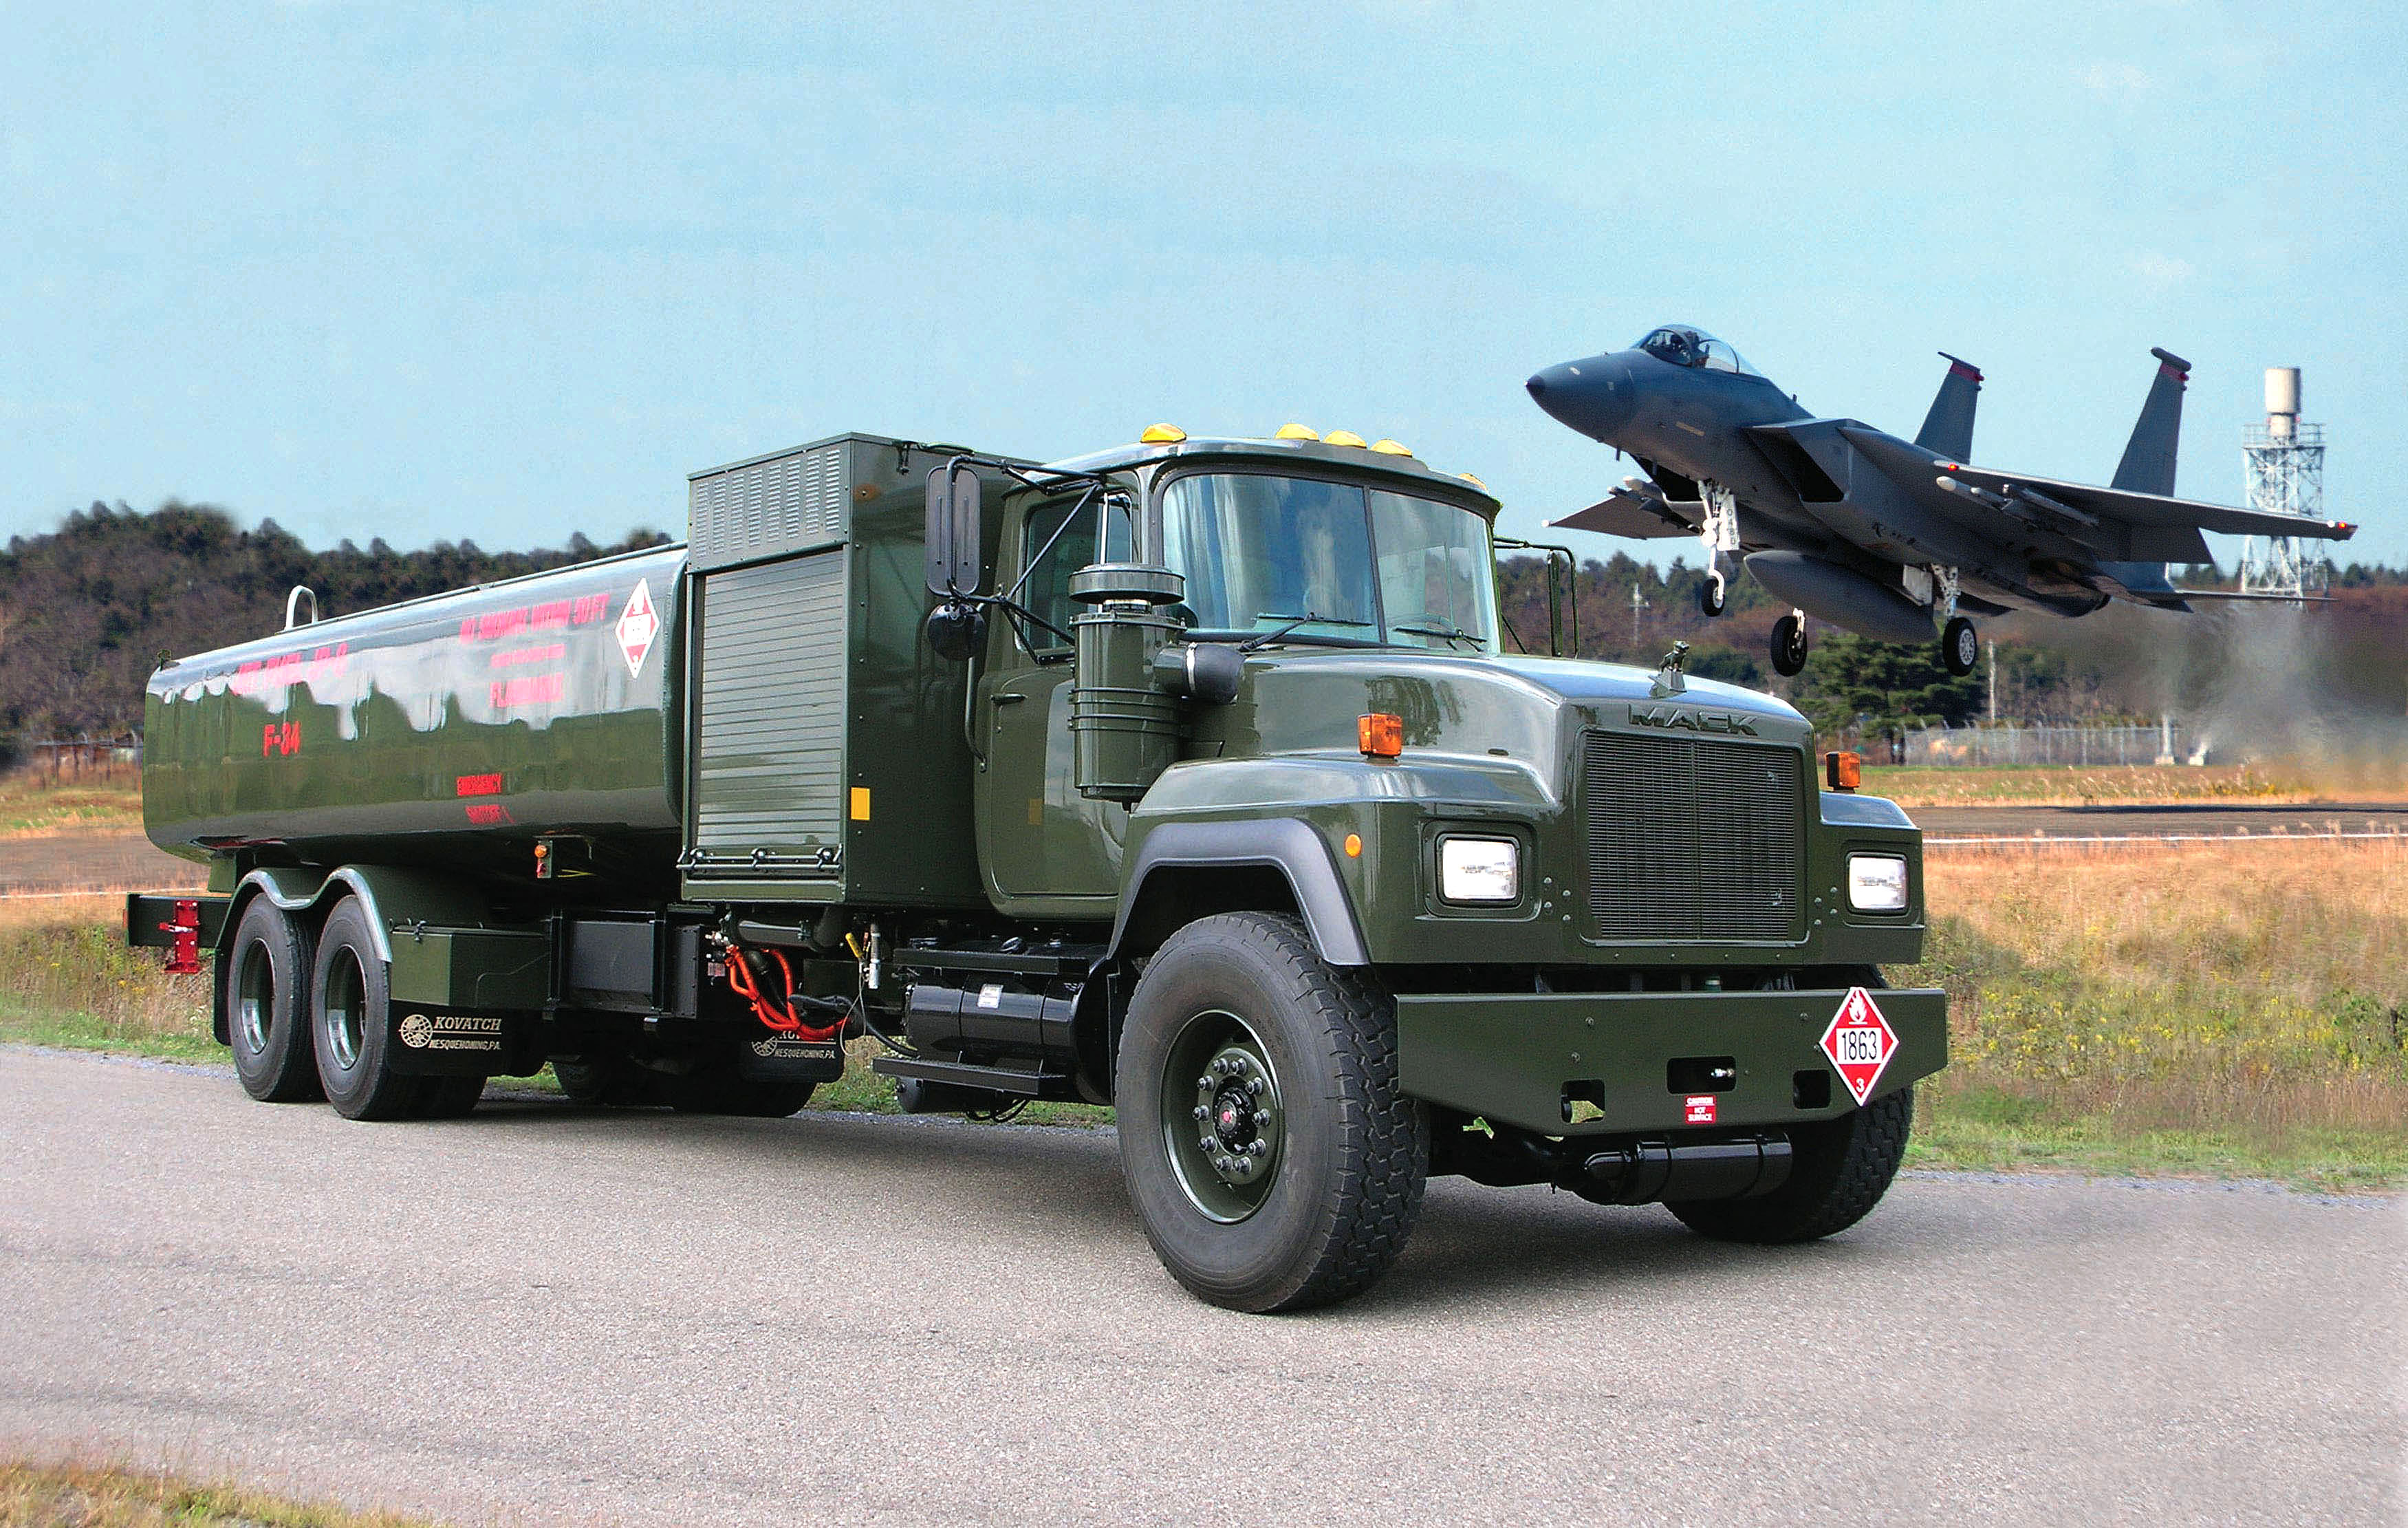 File:The R-11 hybrid electric refueling truck.jpg - Wikimedia Commons